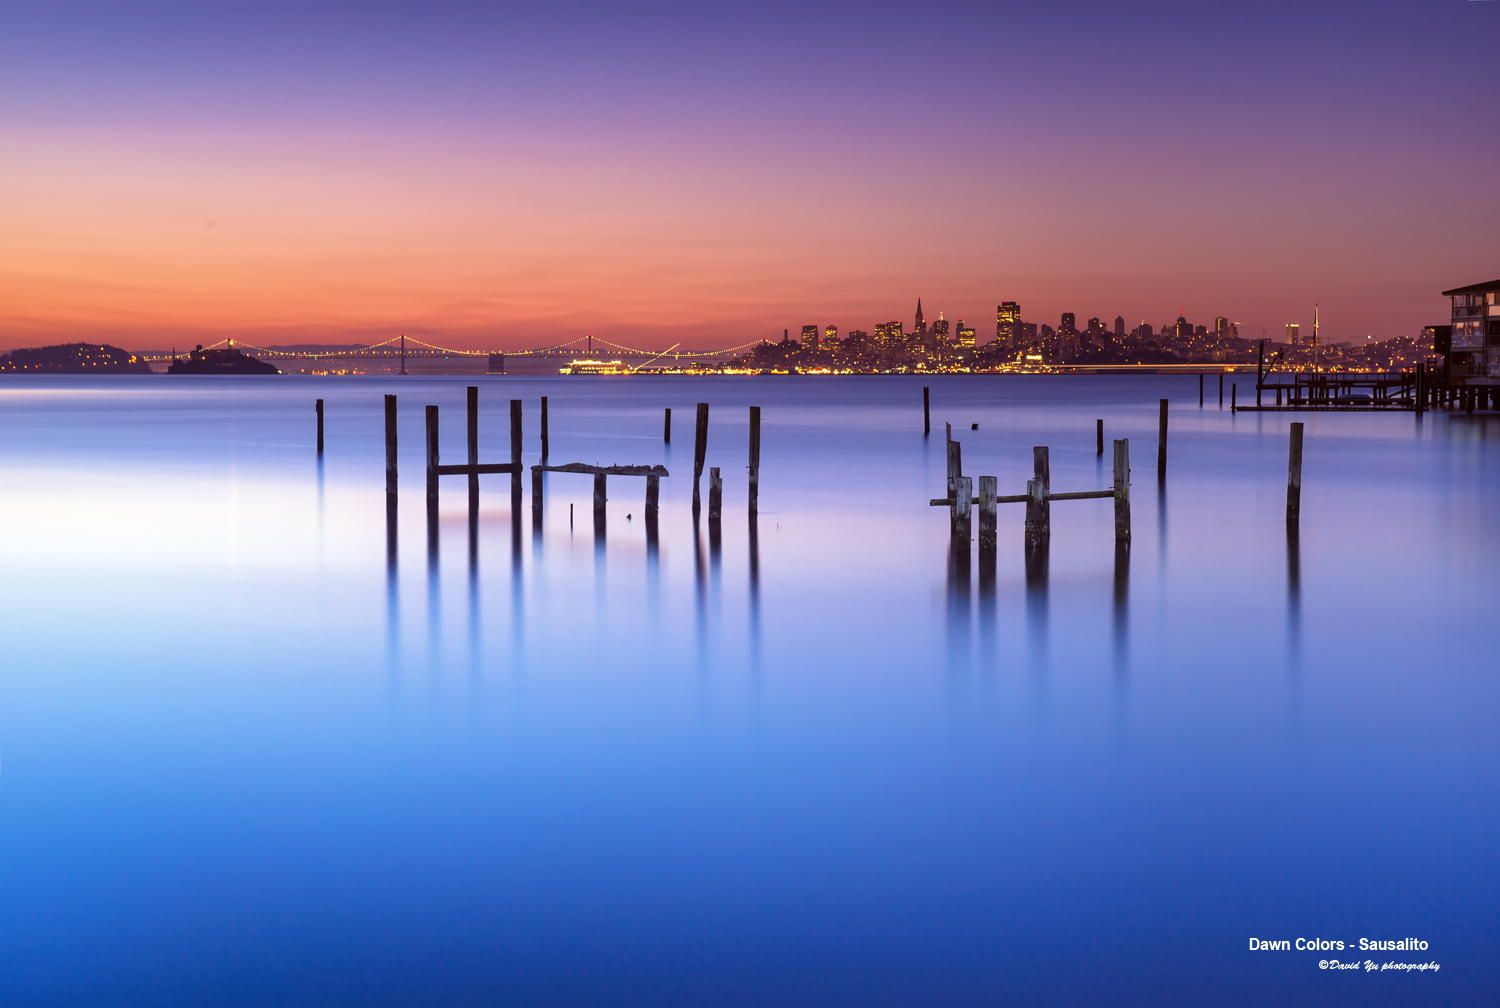 Dawn Colors - Sausalito by David Yu on 500px